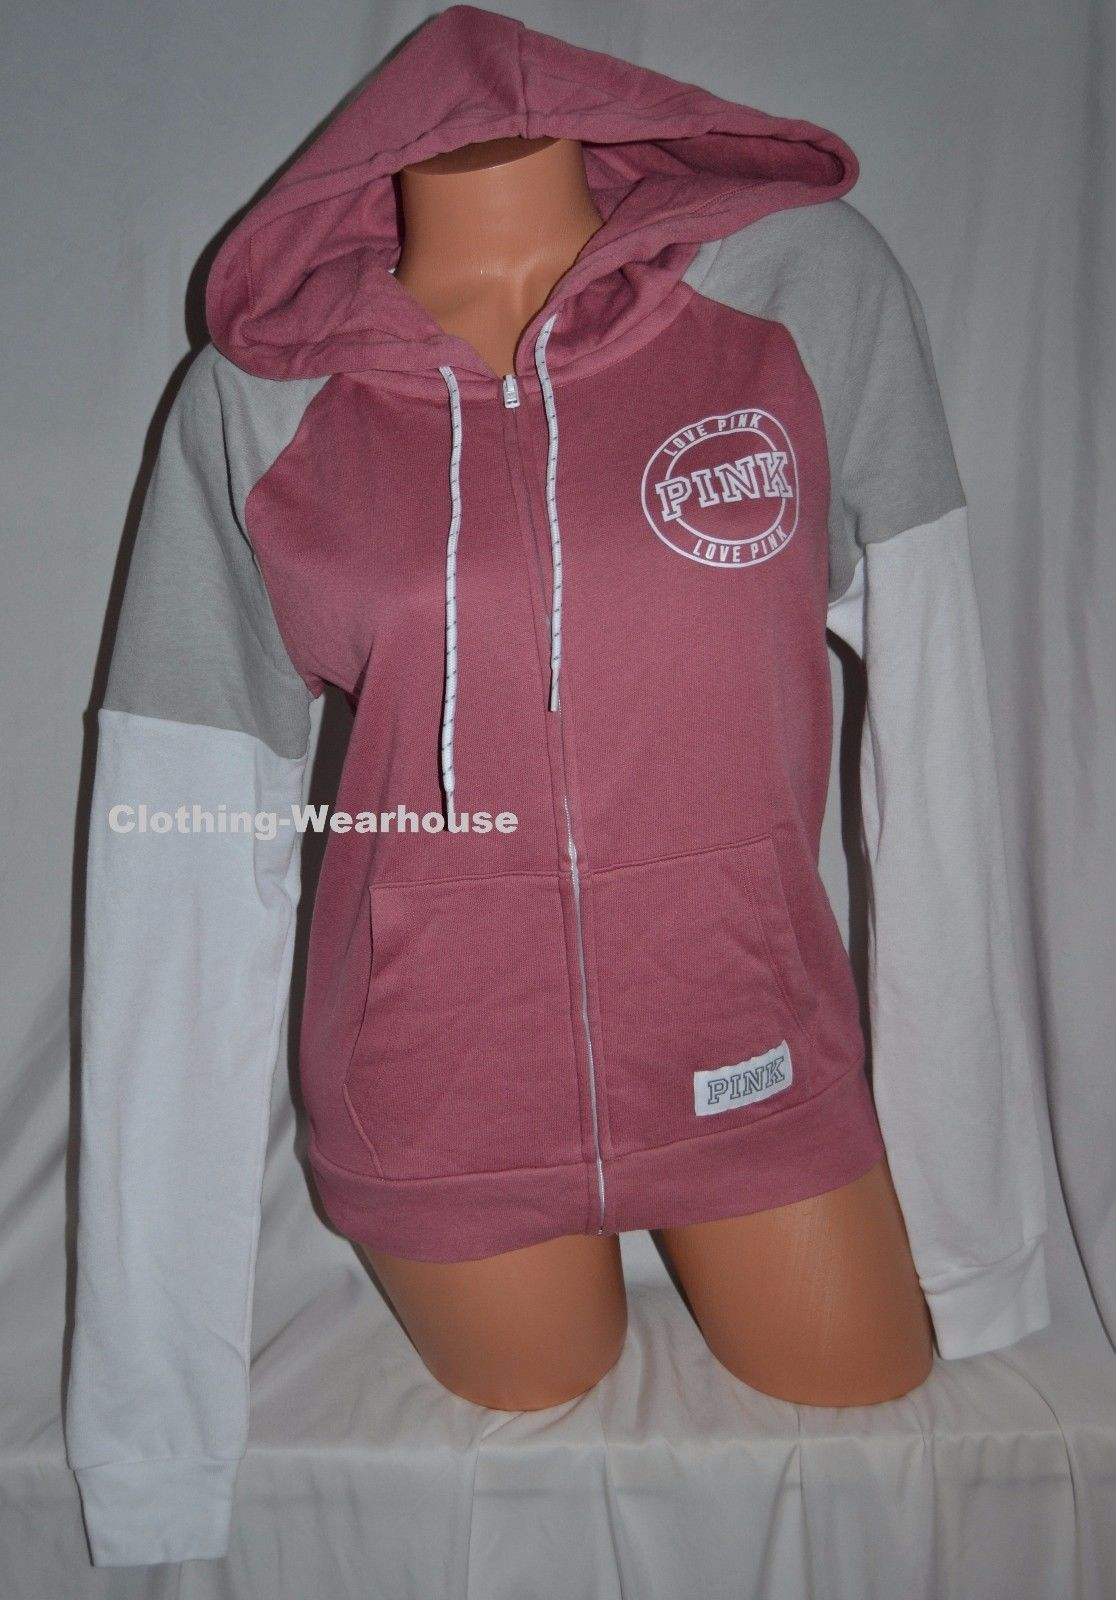 35b3a69bf194a Victoria's Secret PINK Perfect Full Zip and 50 similar items